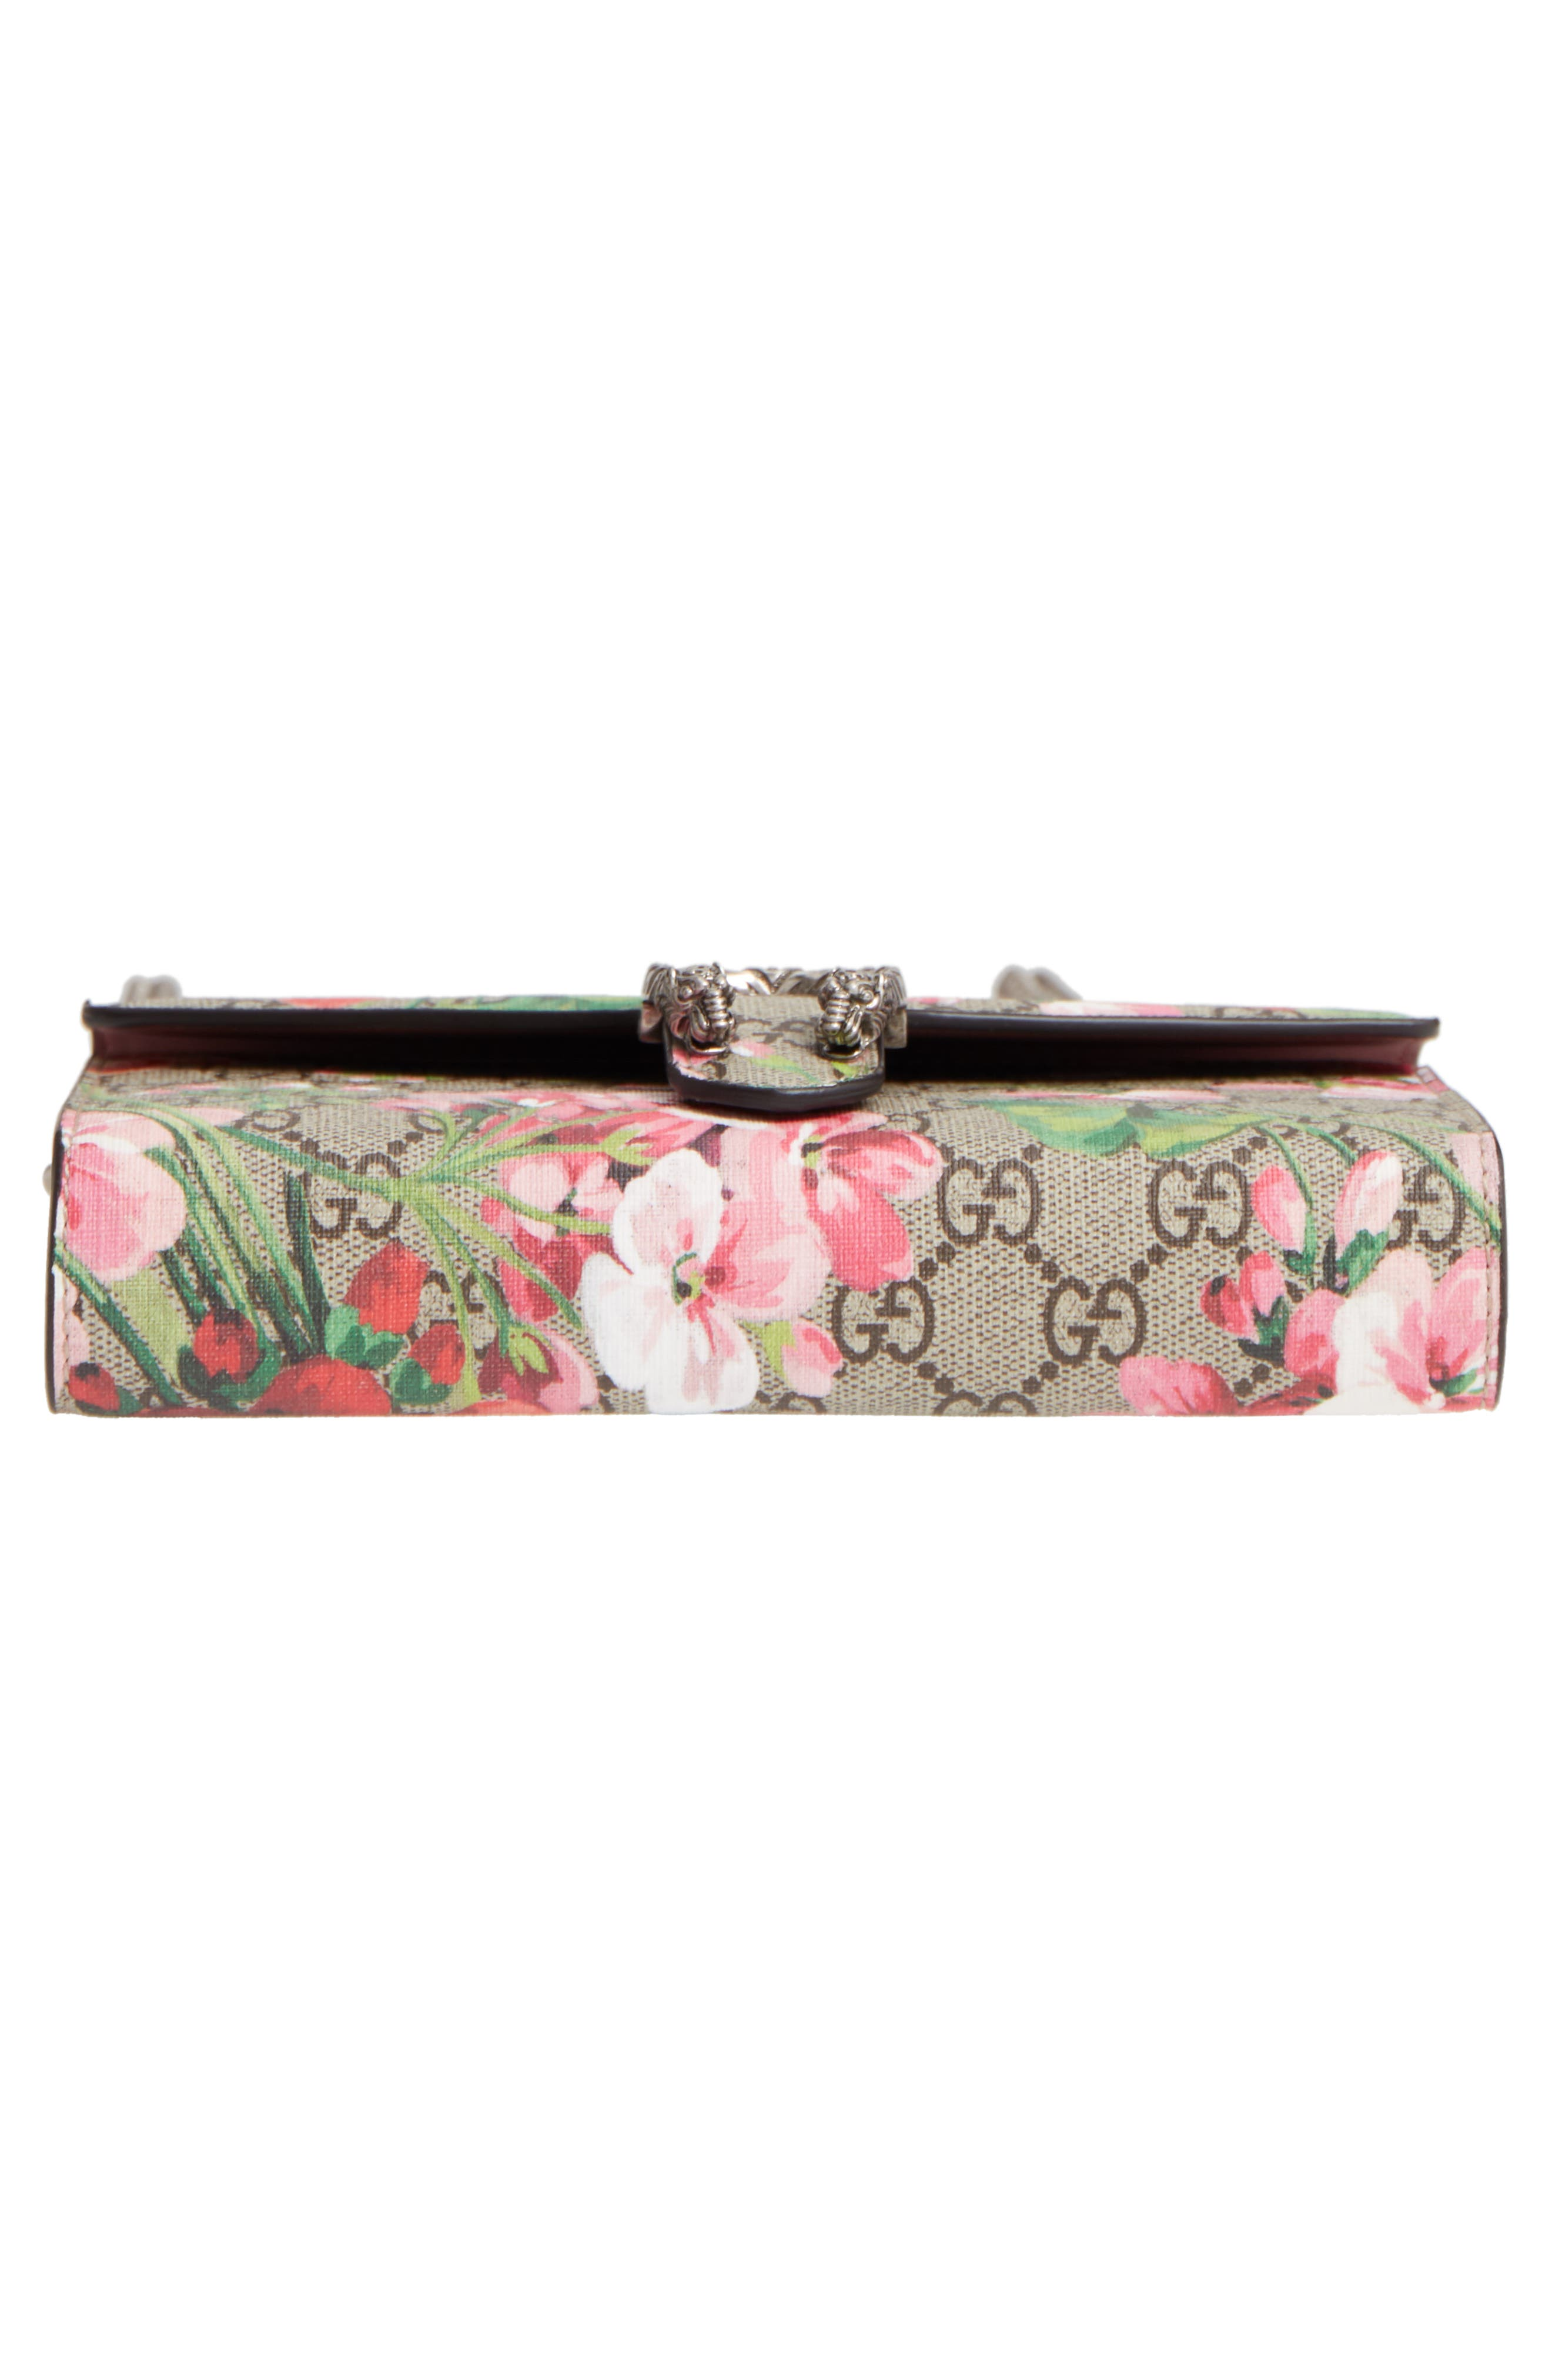 GUCCI, Blooms GG Supreme Canvas Wallet on a Chain, Alternate thumbnail 6, color, BEIGE EBONY/ DRY ROSE